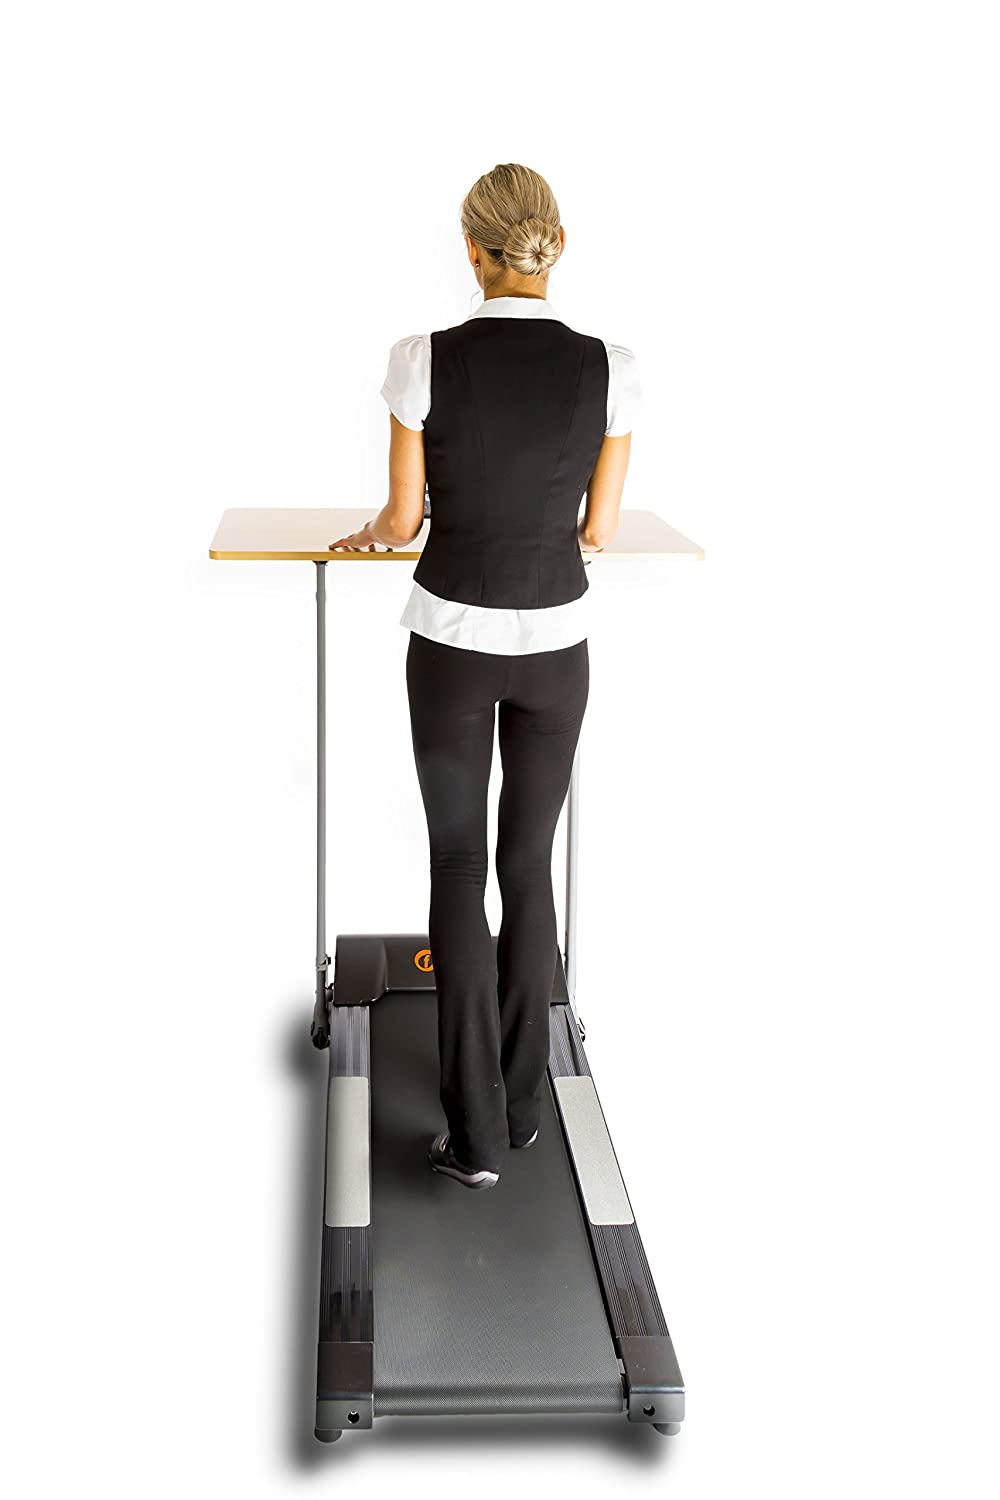 to outdoor it between be adjusted this equipment in your on the day for top standing activity desk best easily helps exercise work more workstation normal nike of sitting deskercise indybest move can independent amazon reebok and you extras varidesk fitness sits